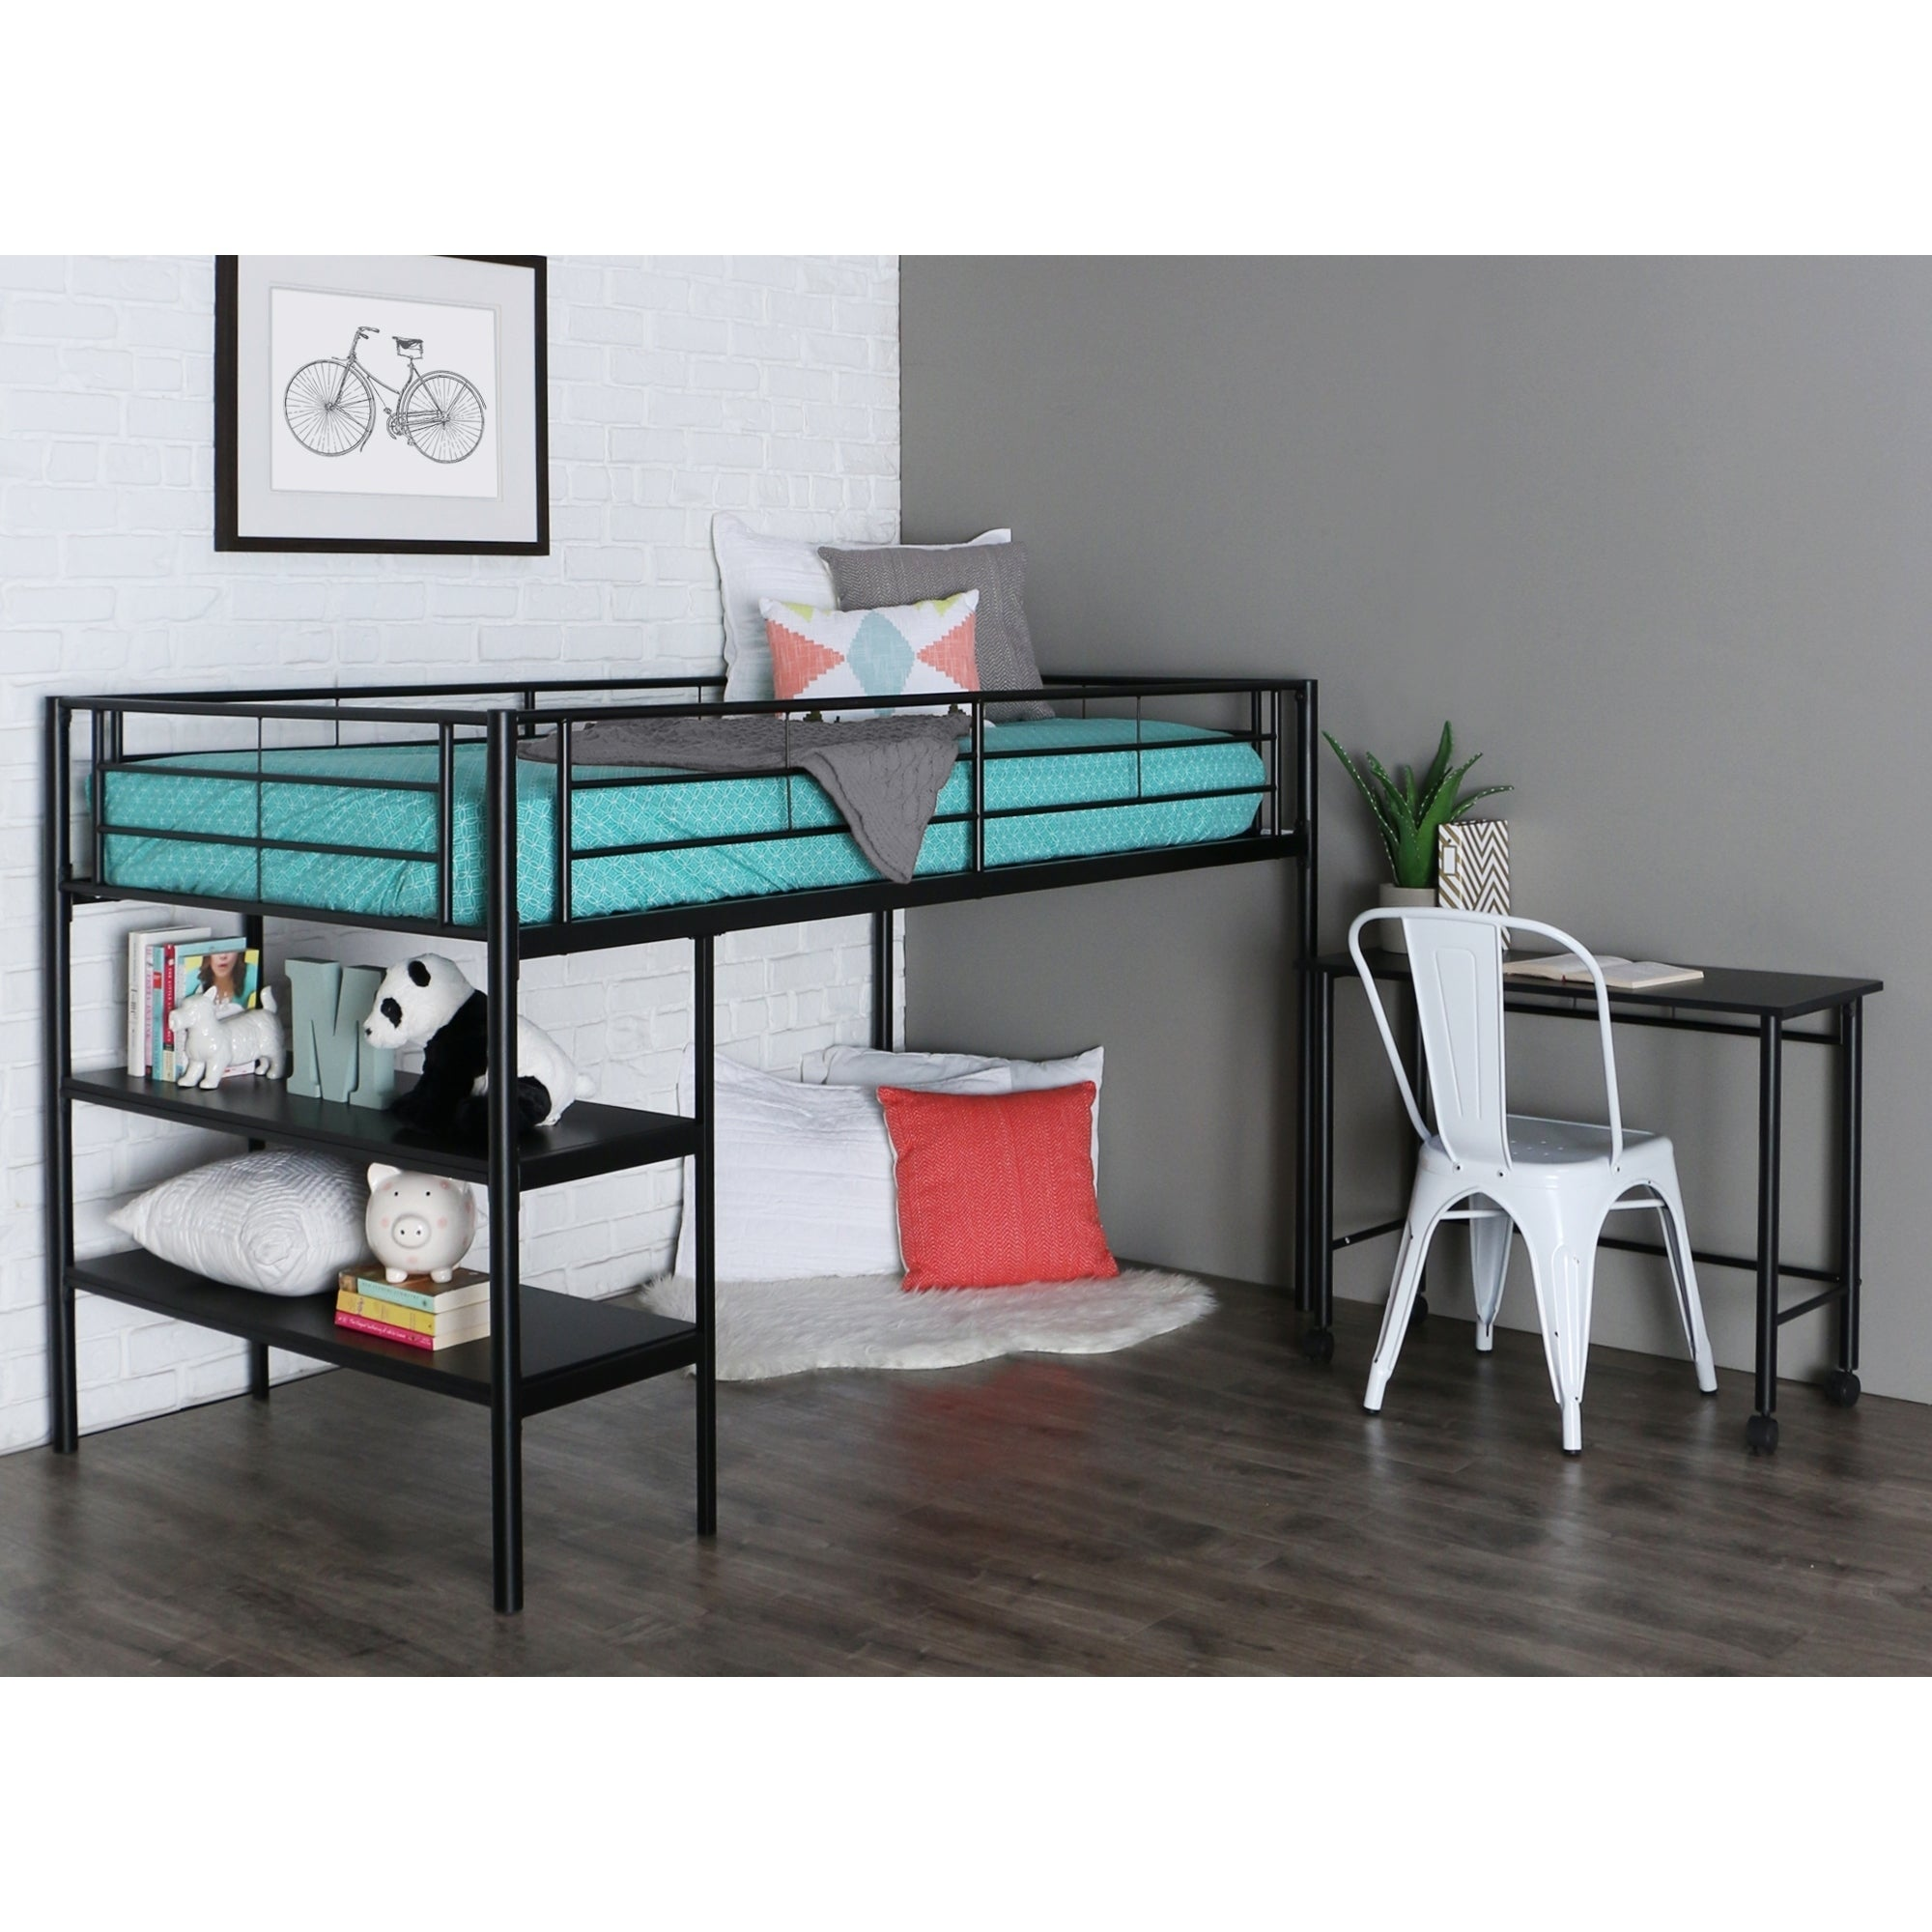 double loft low out bunk bed cheap world beds with combo top this innovation desk girls of